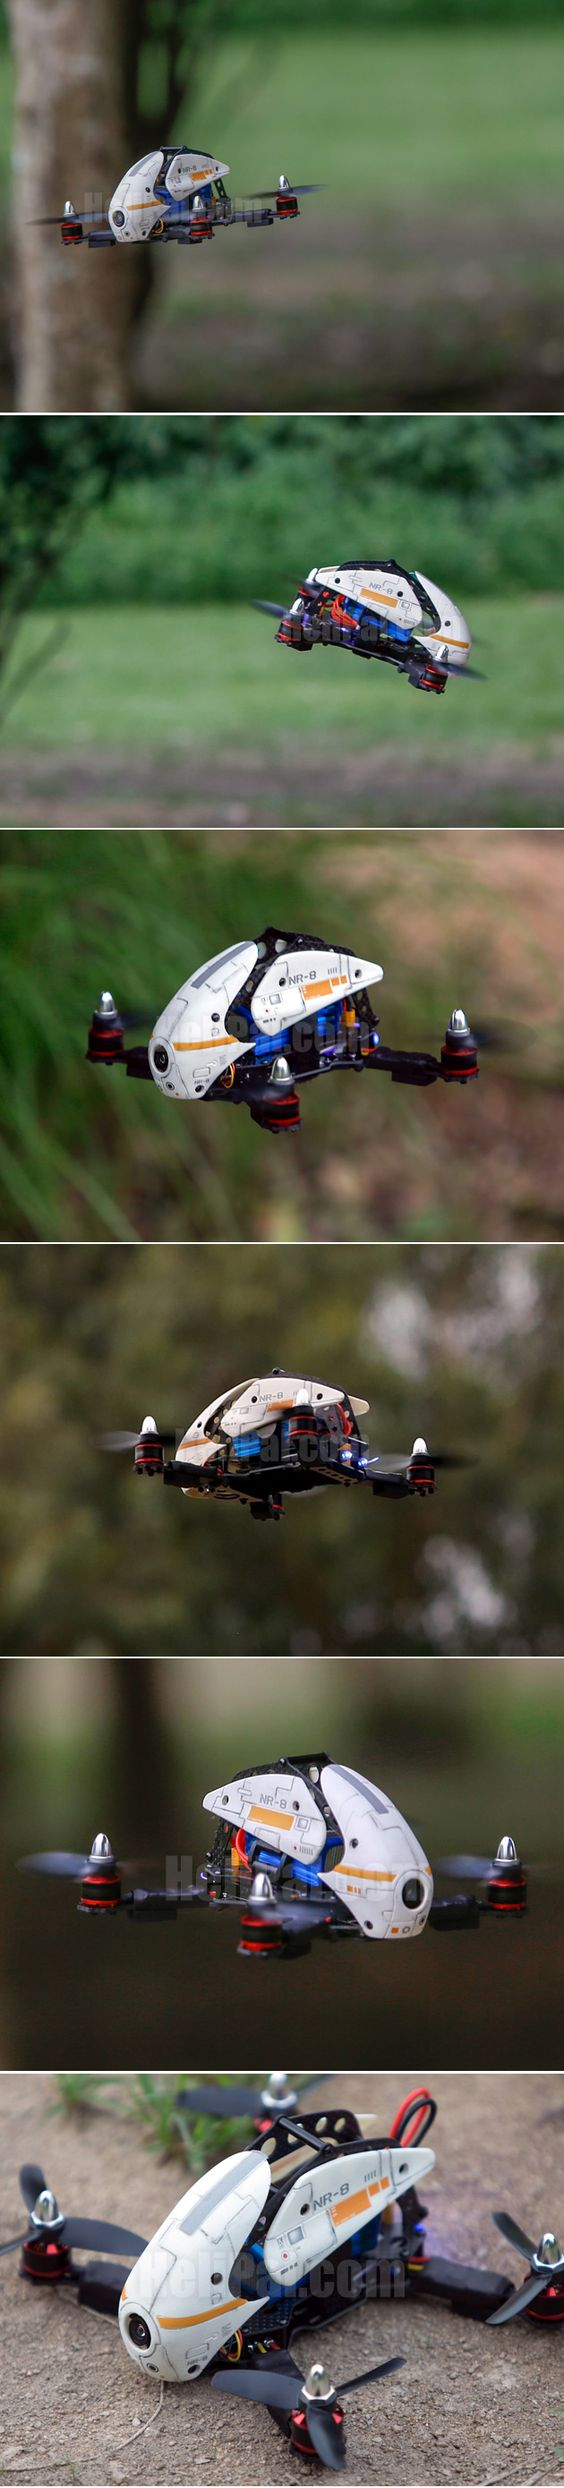 The new Storm Racing Drone from Helipal - built for speed with four rotors.